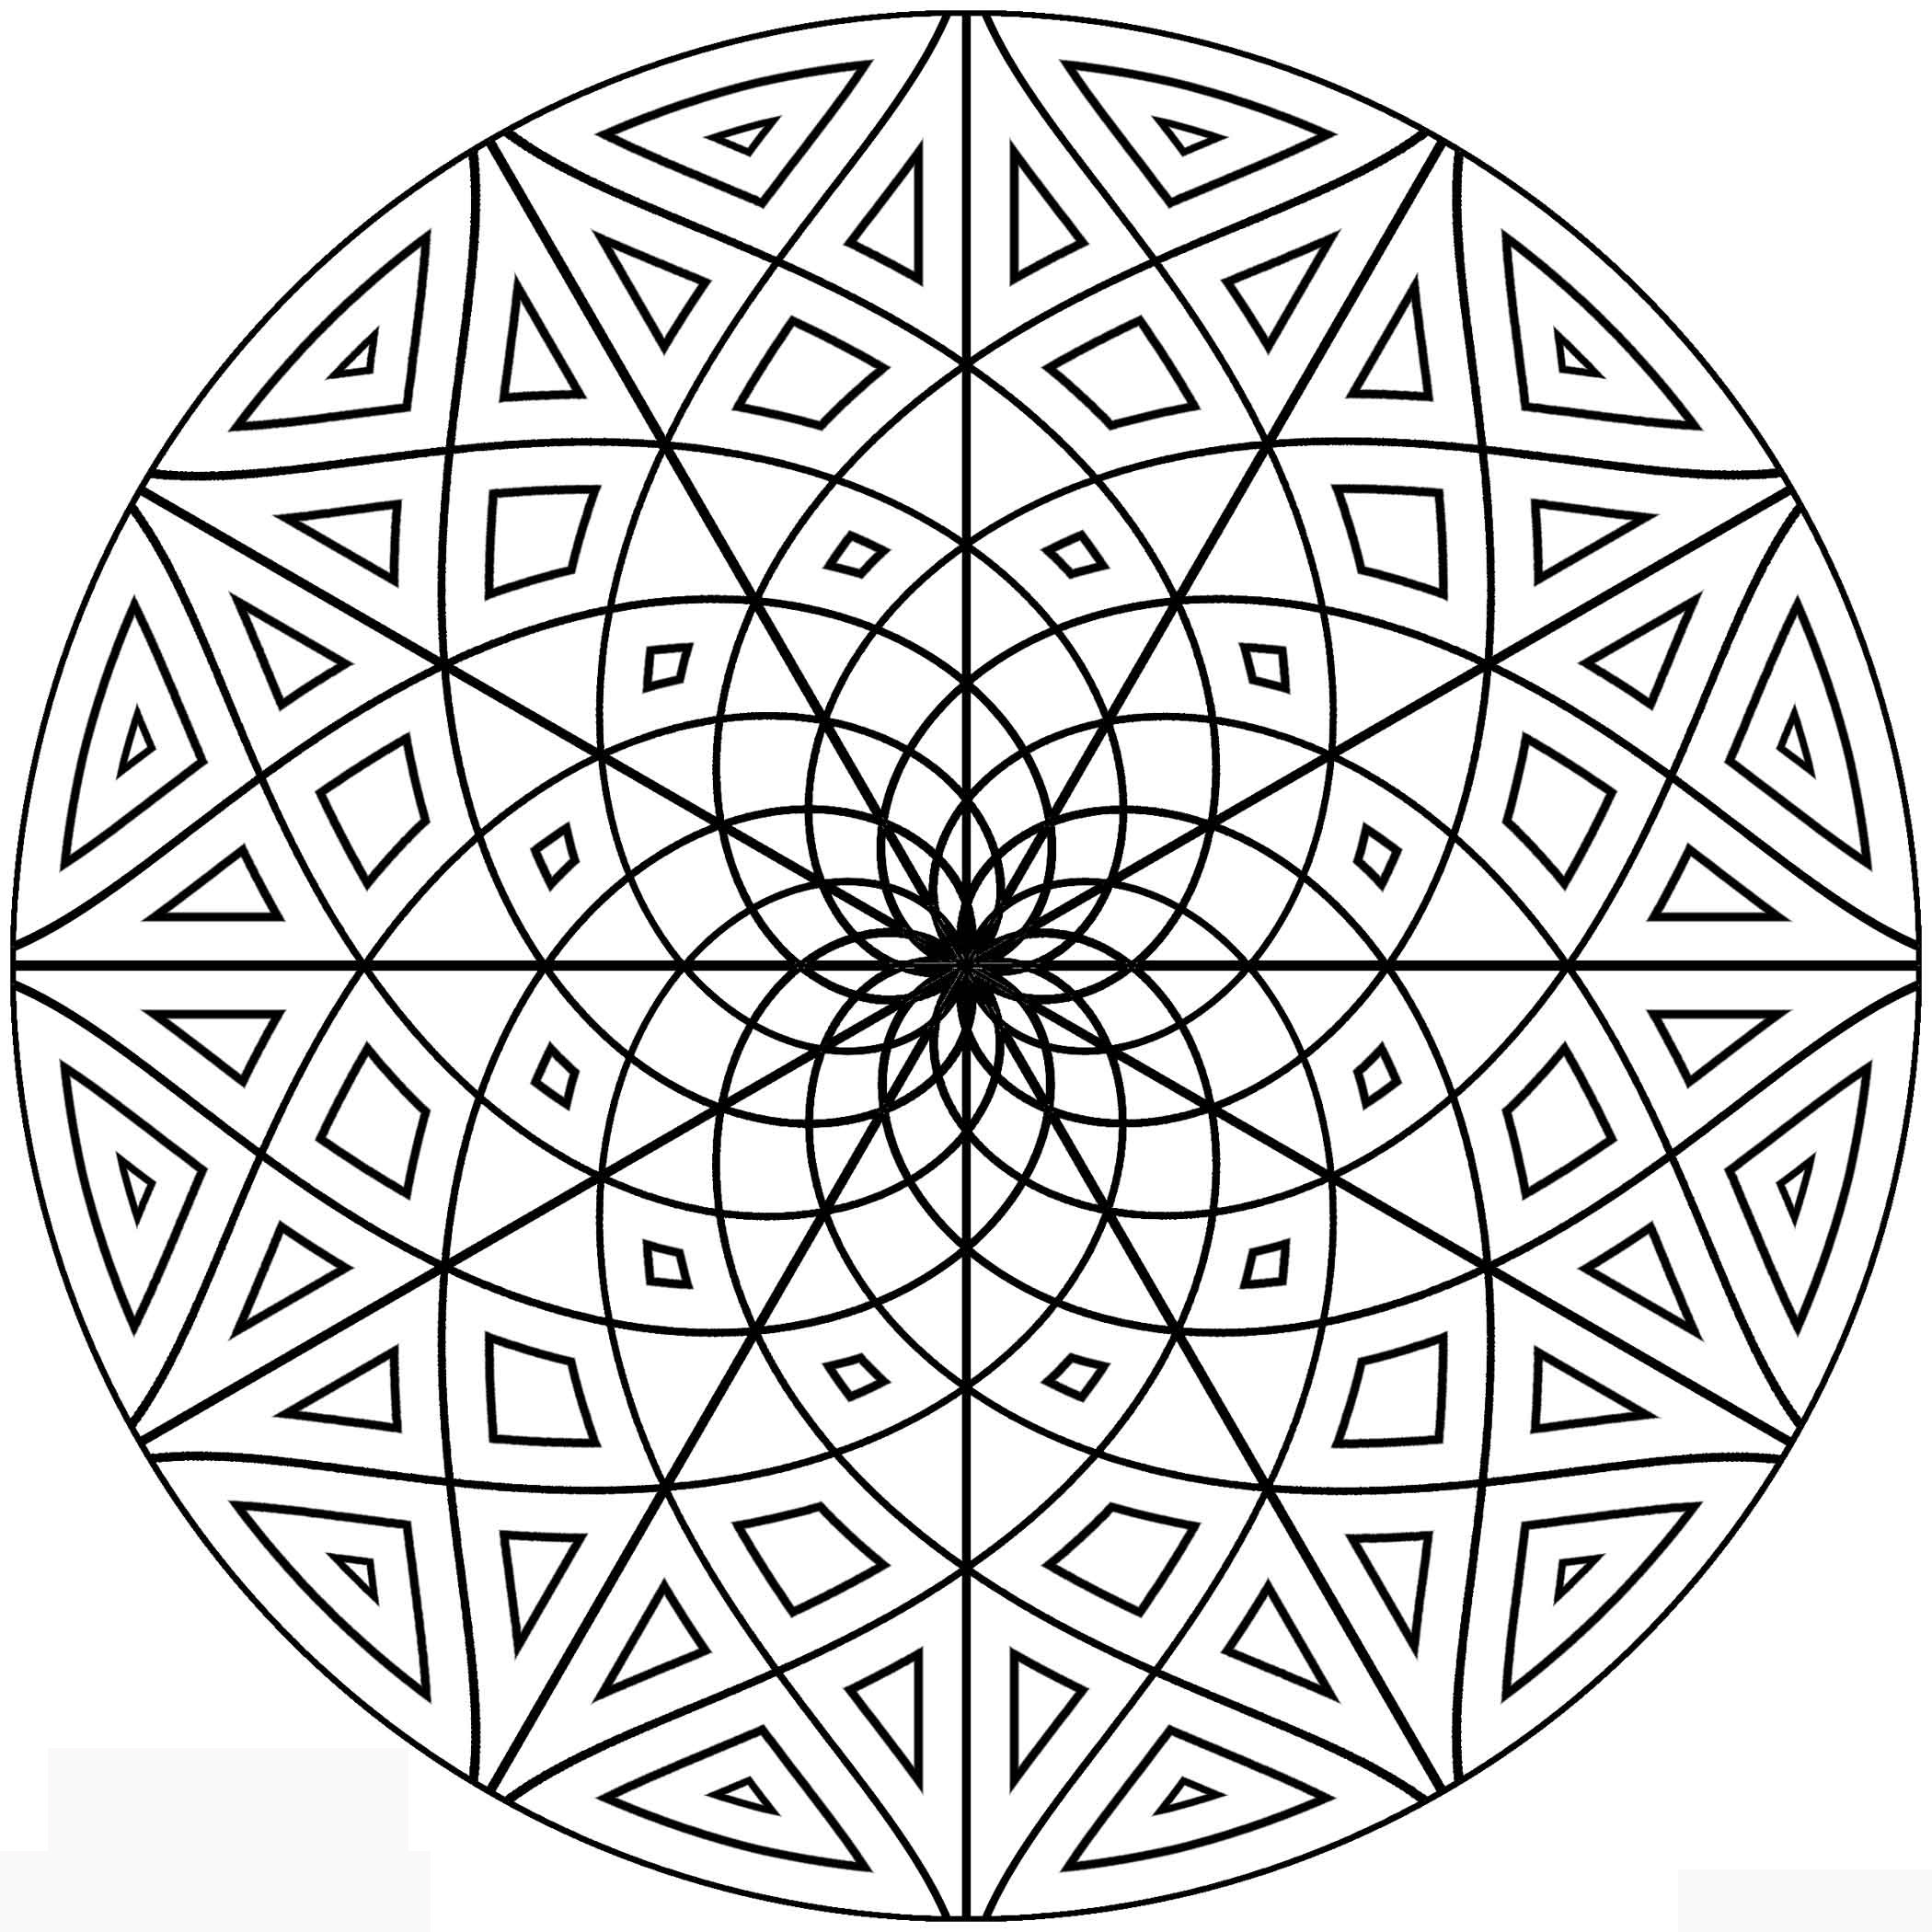 Geometric Design Coloring Pages - Coloring Page